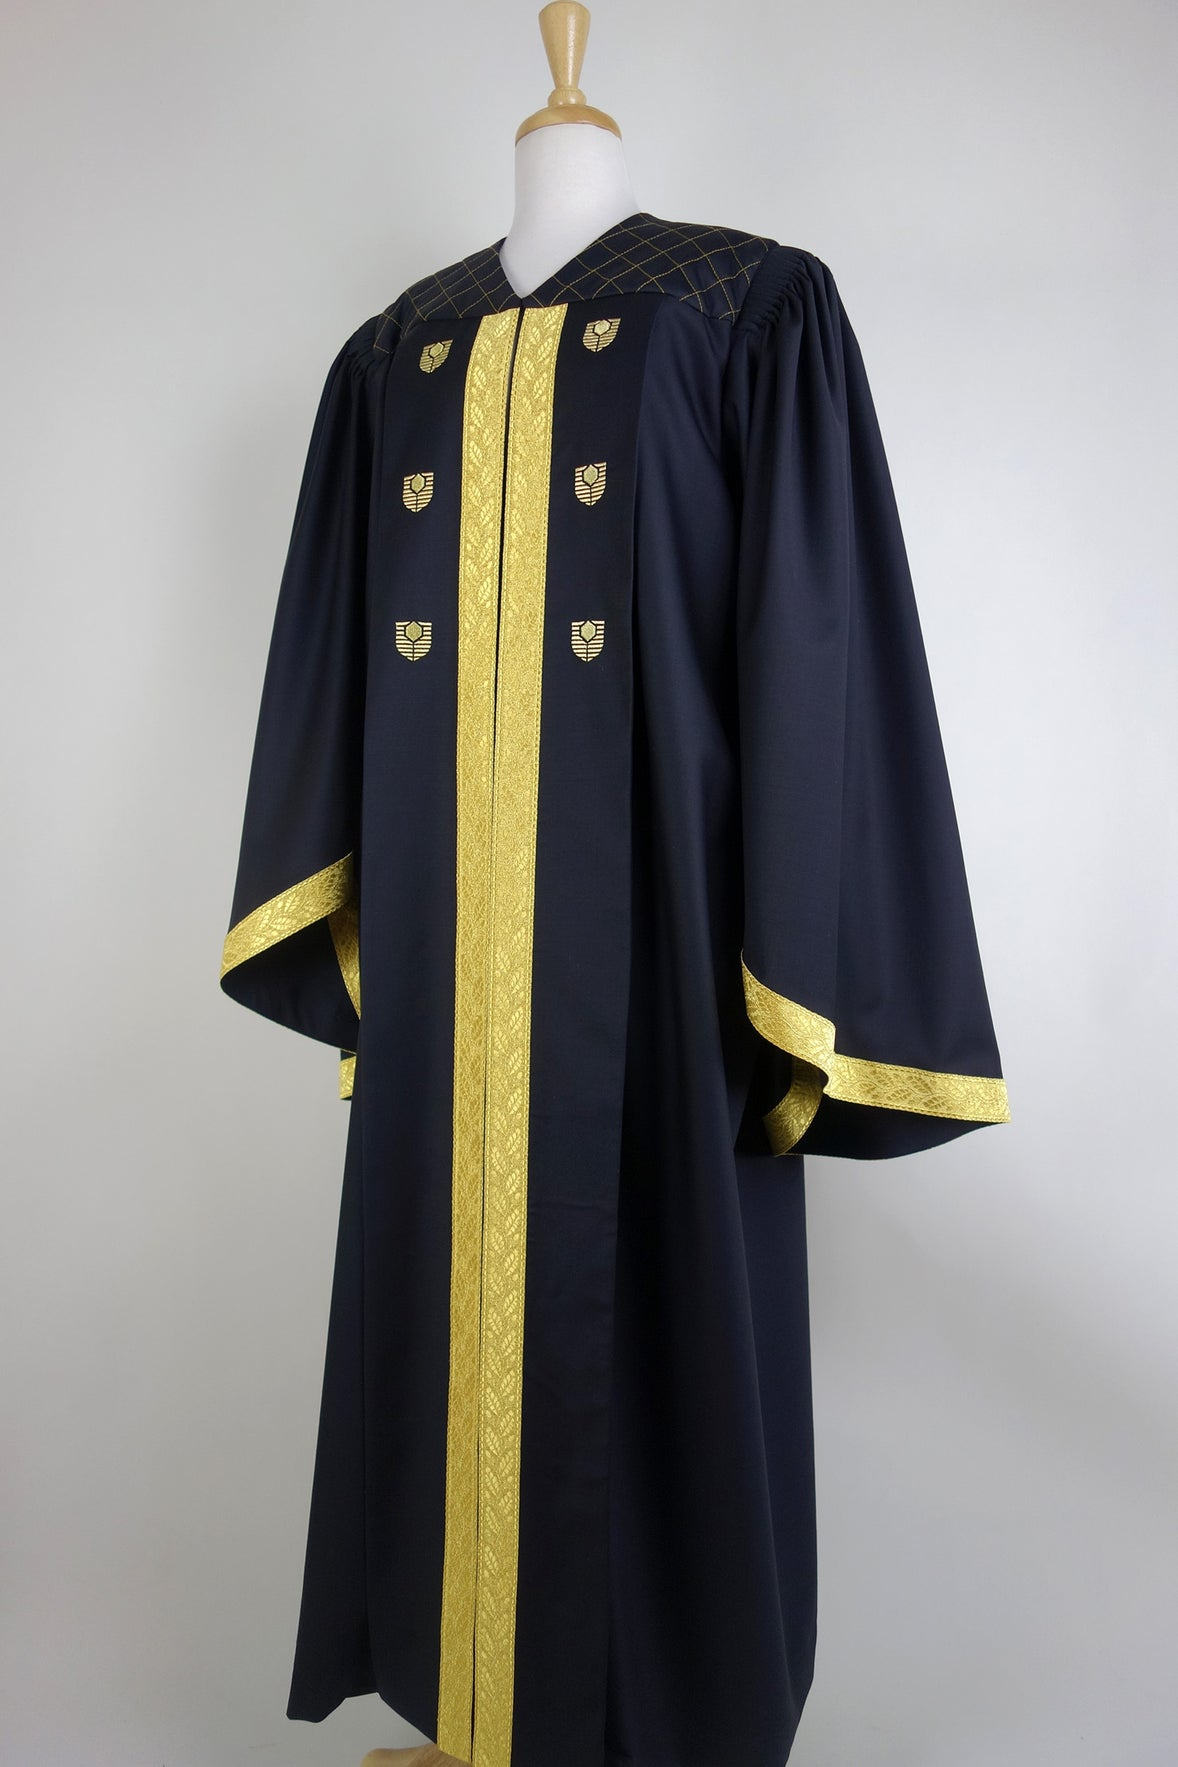 Council Robes